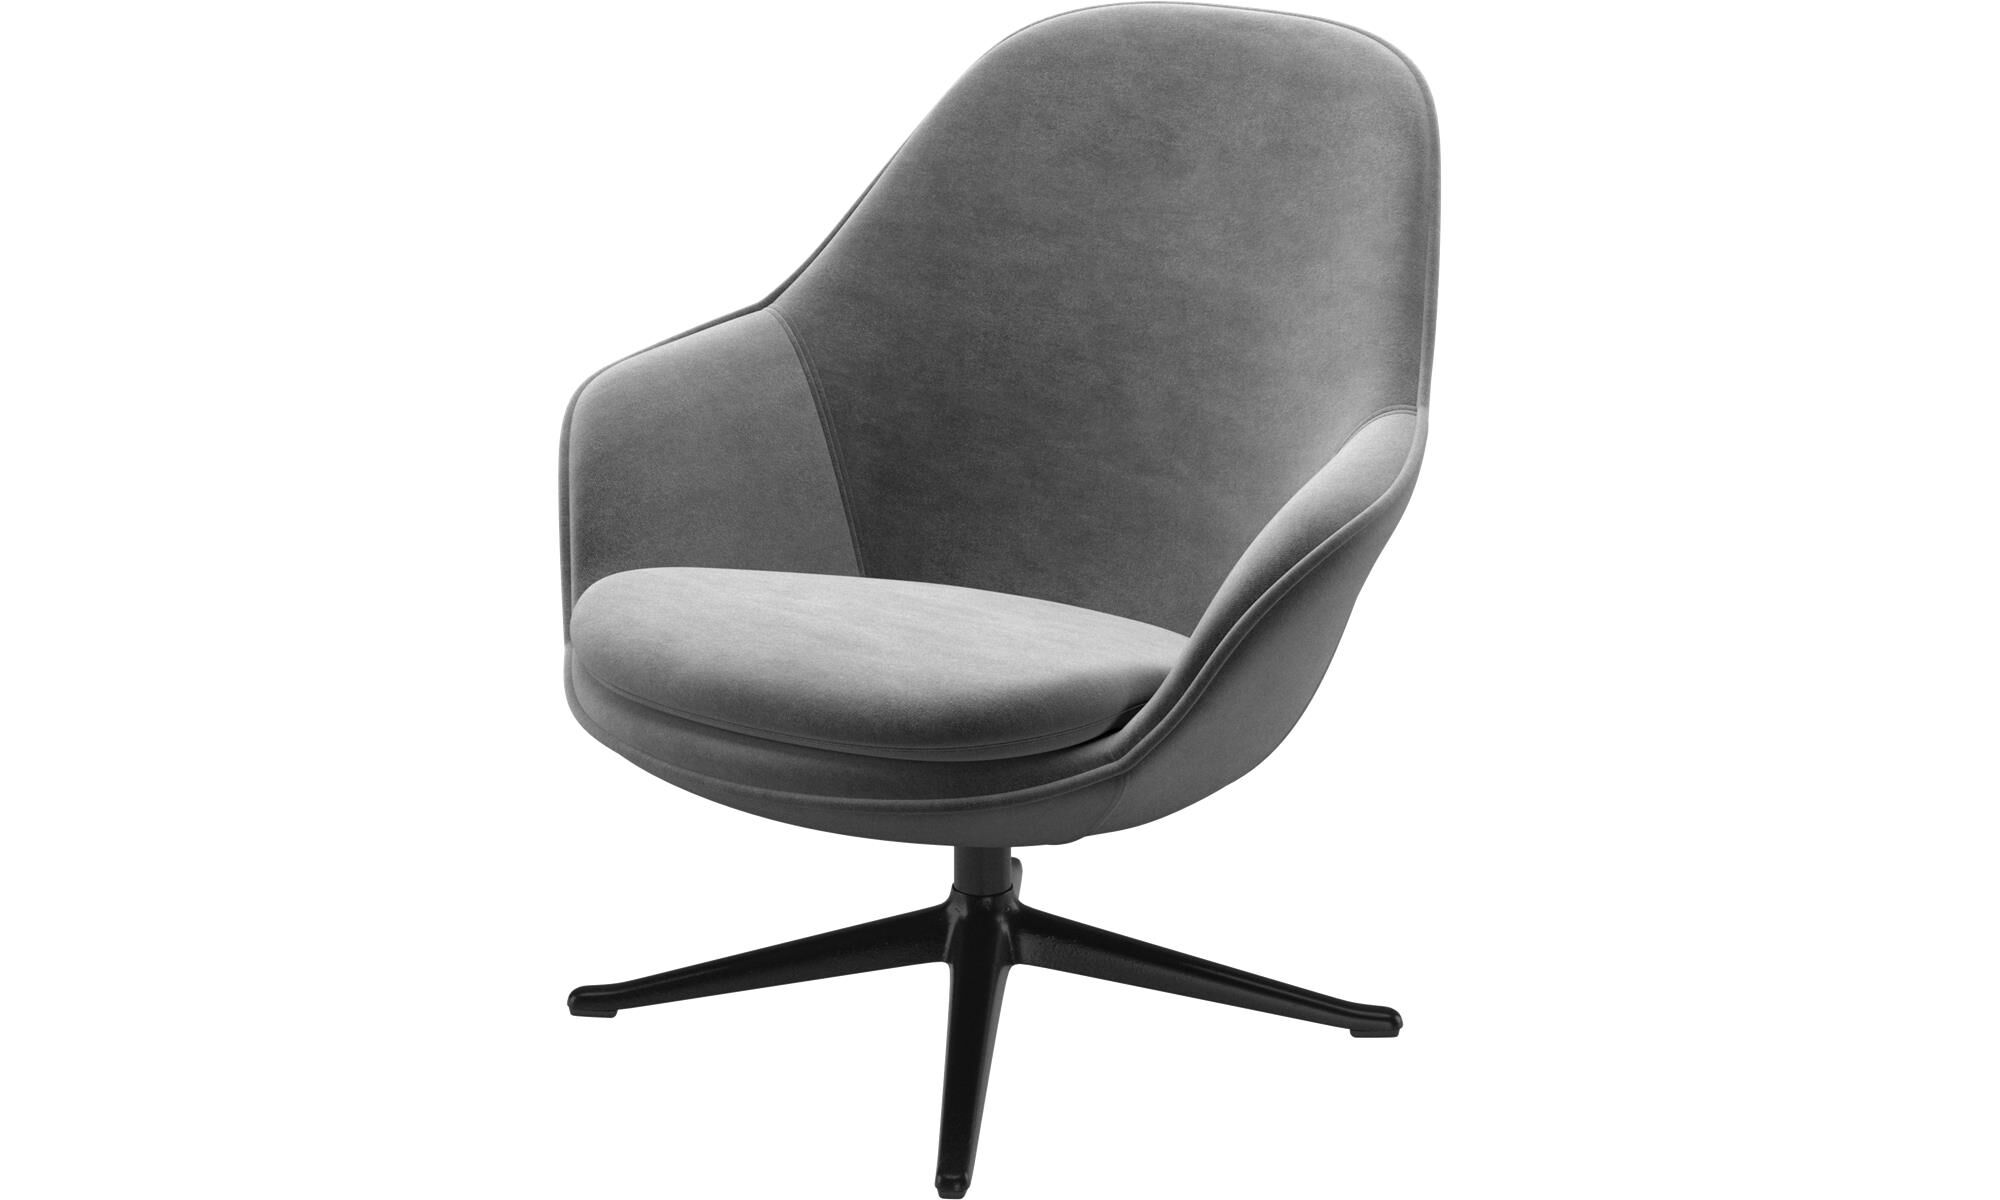 Armchairs   Adelaide Living Chair   Gray   Fabric